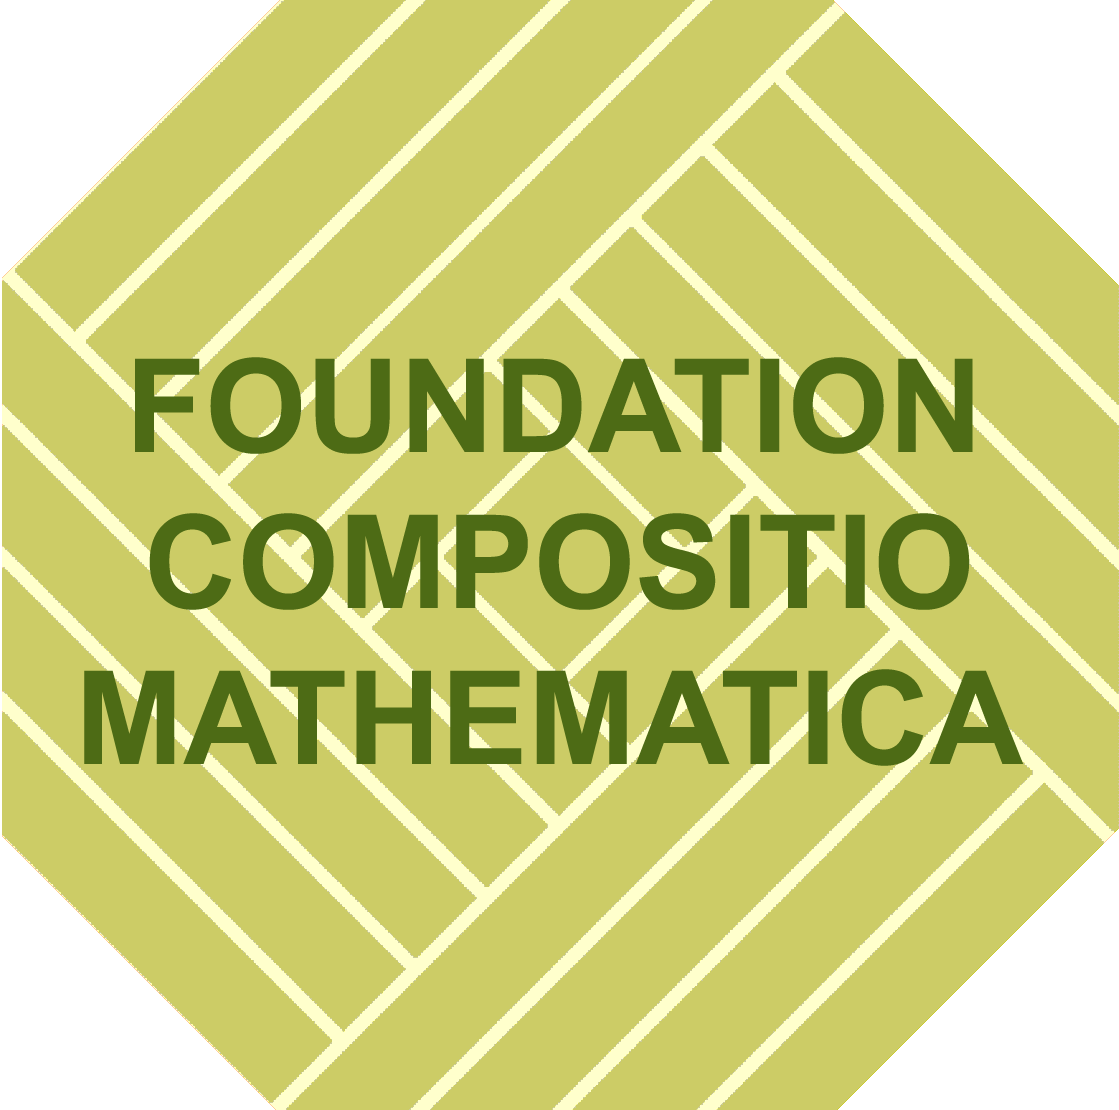 Foundation Compositio Mathematica